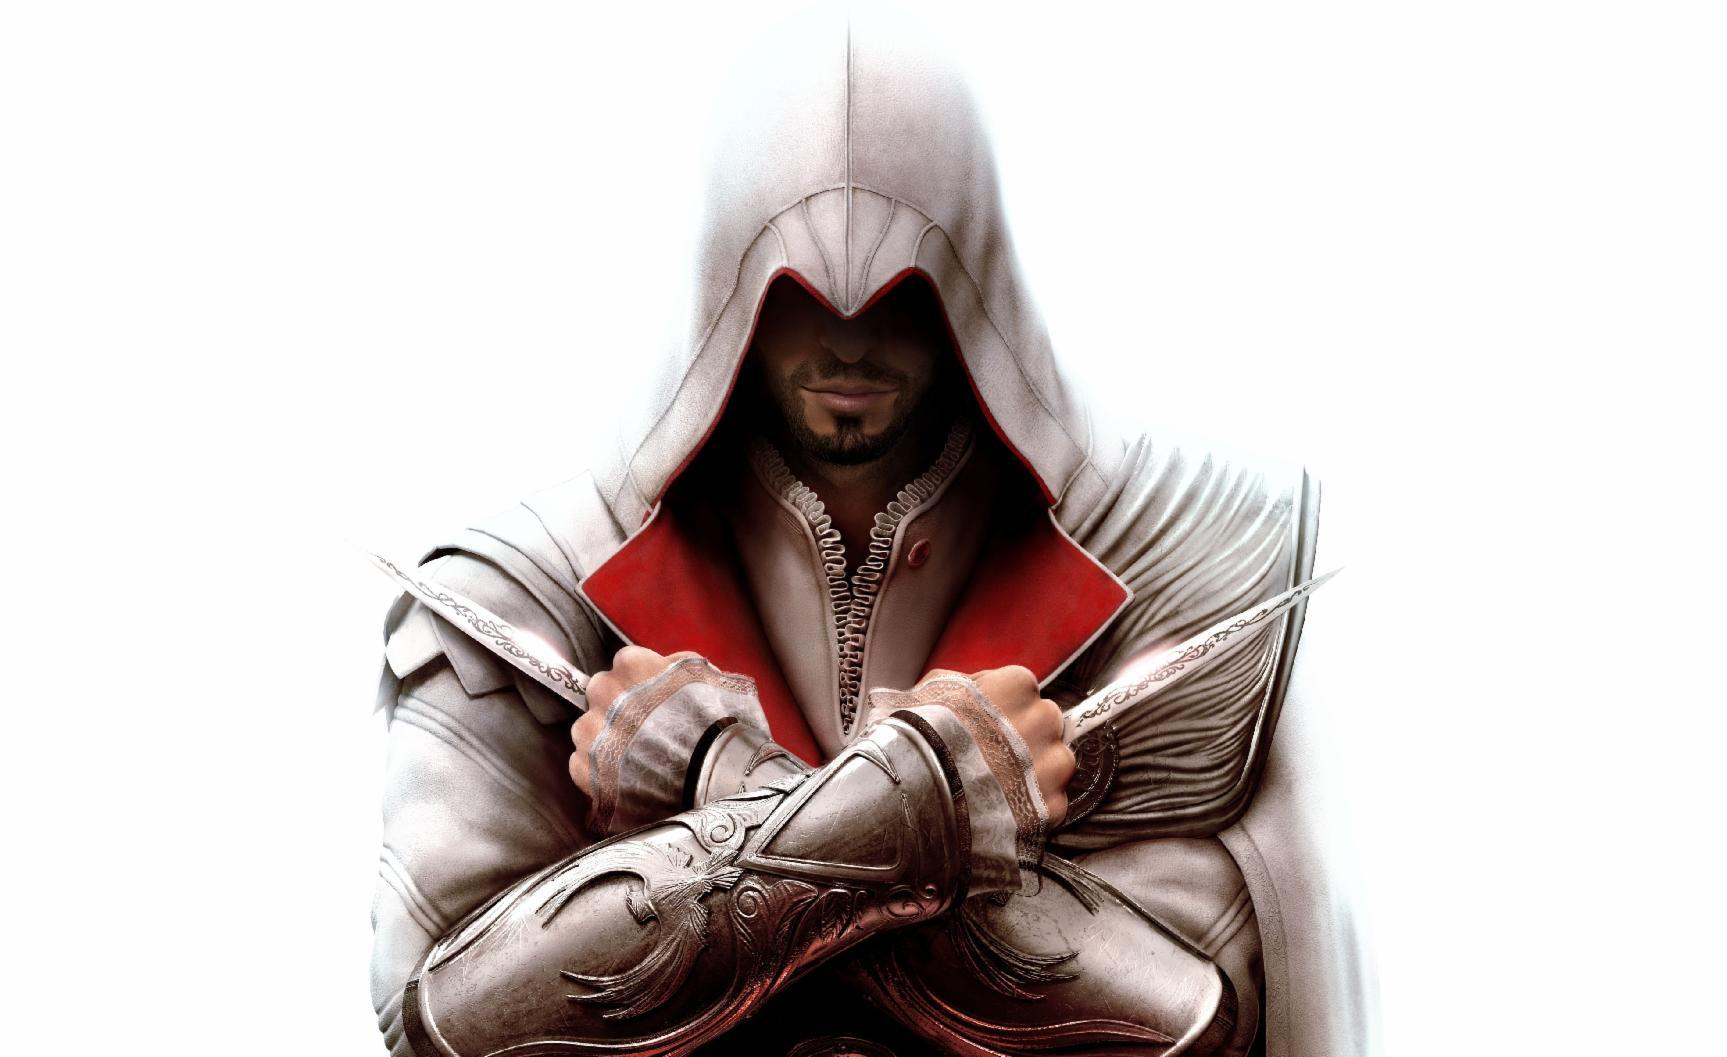 Who gives Ezio his outfit from Assassin's Creed Brotherhood?